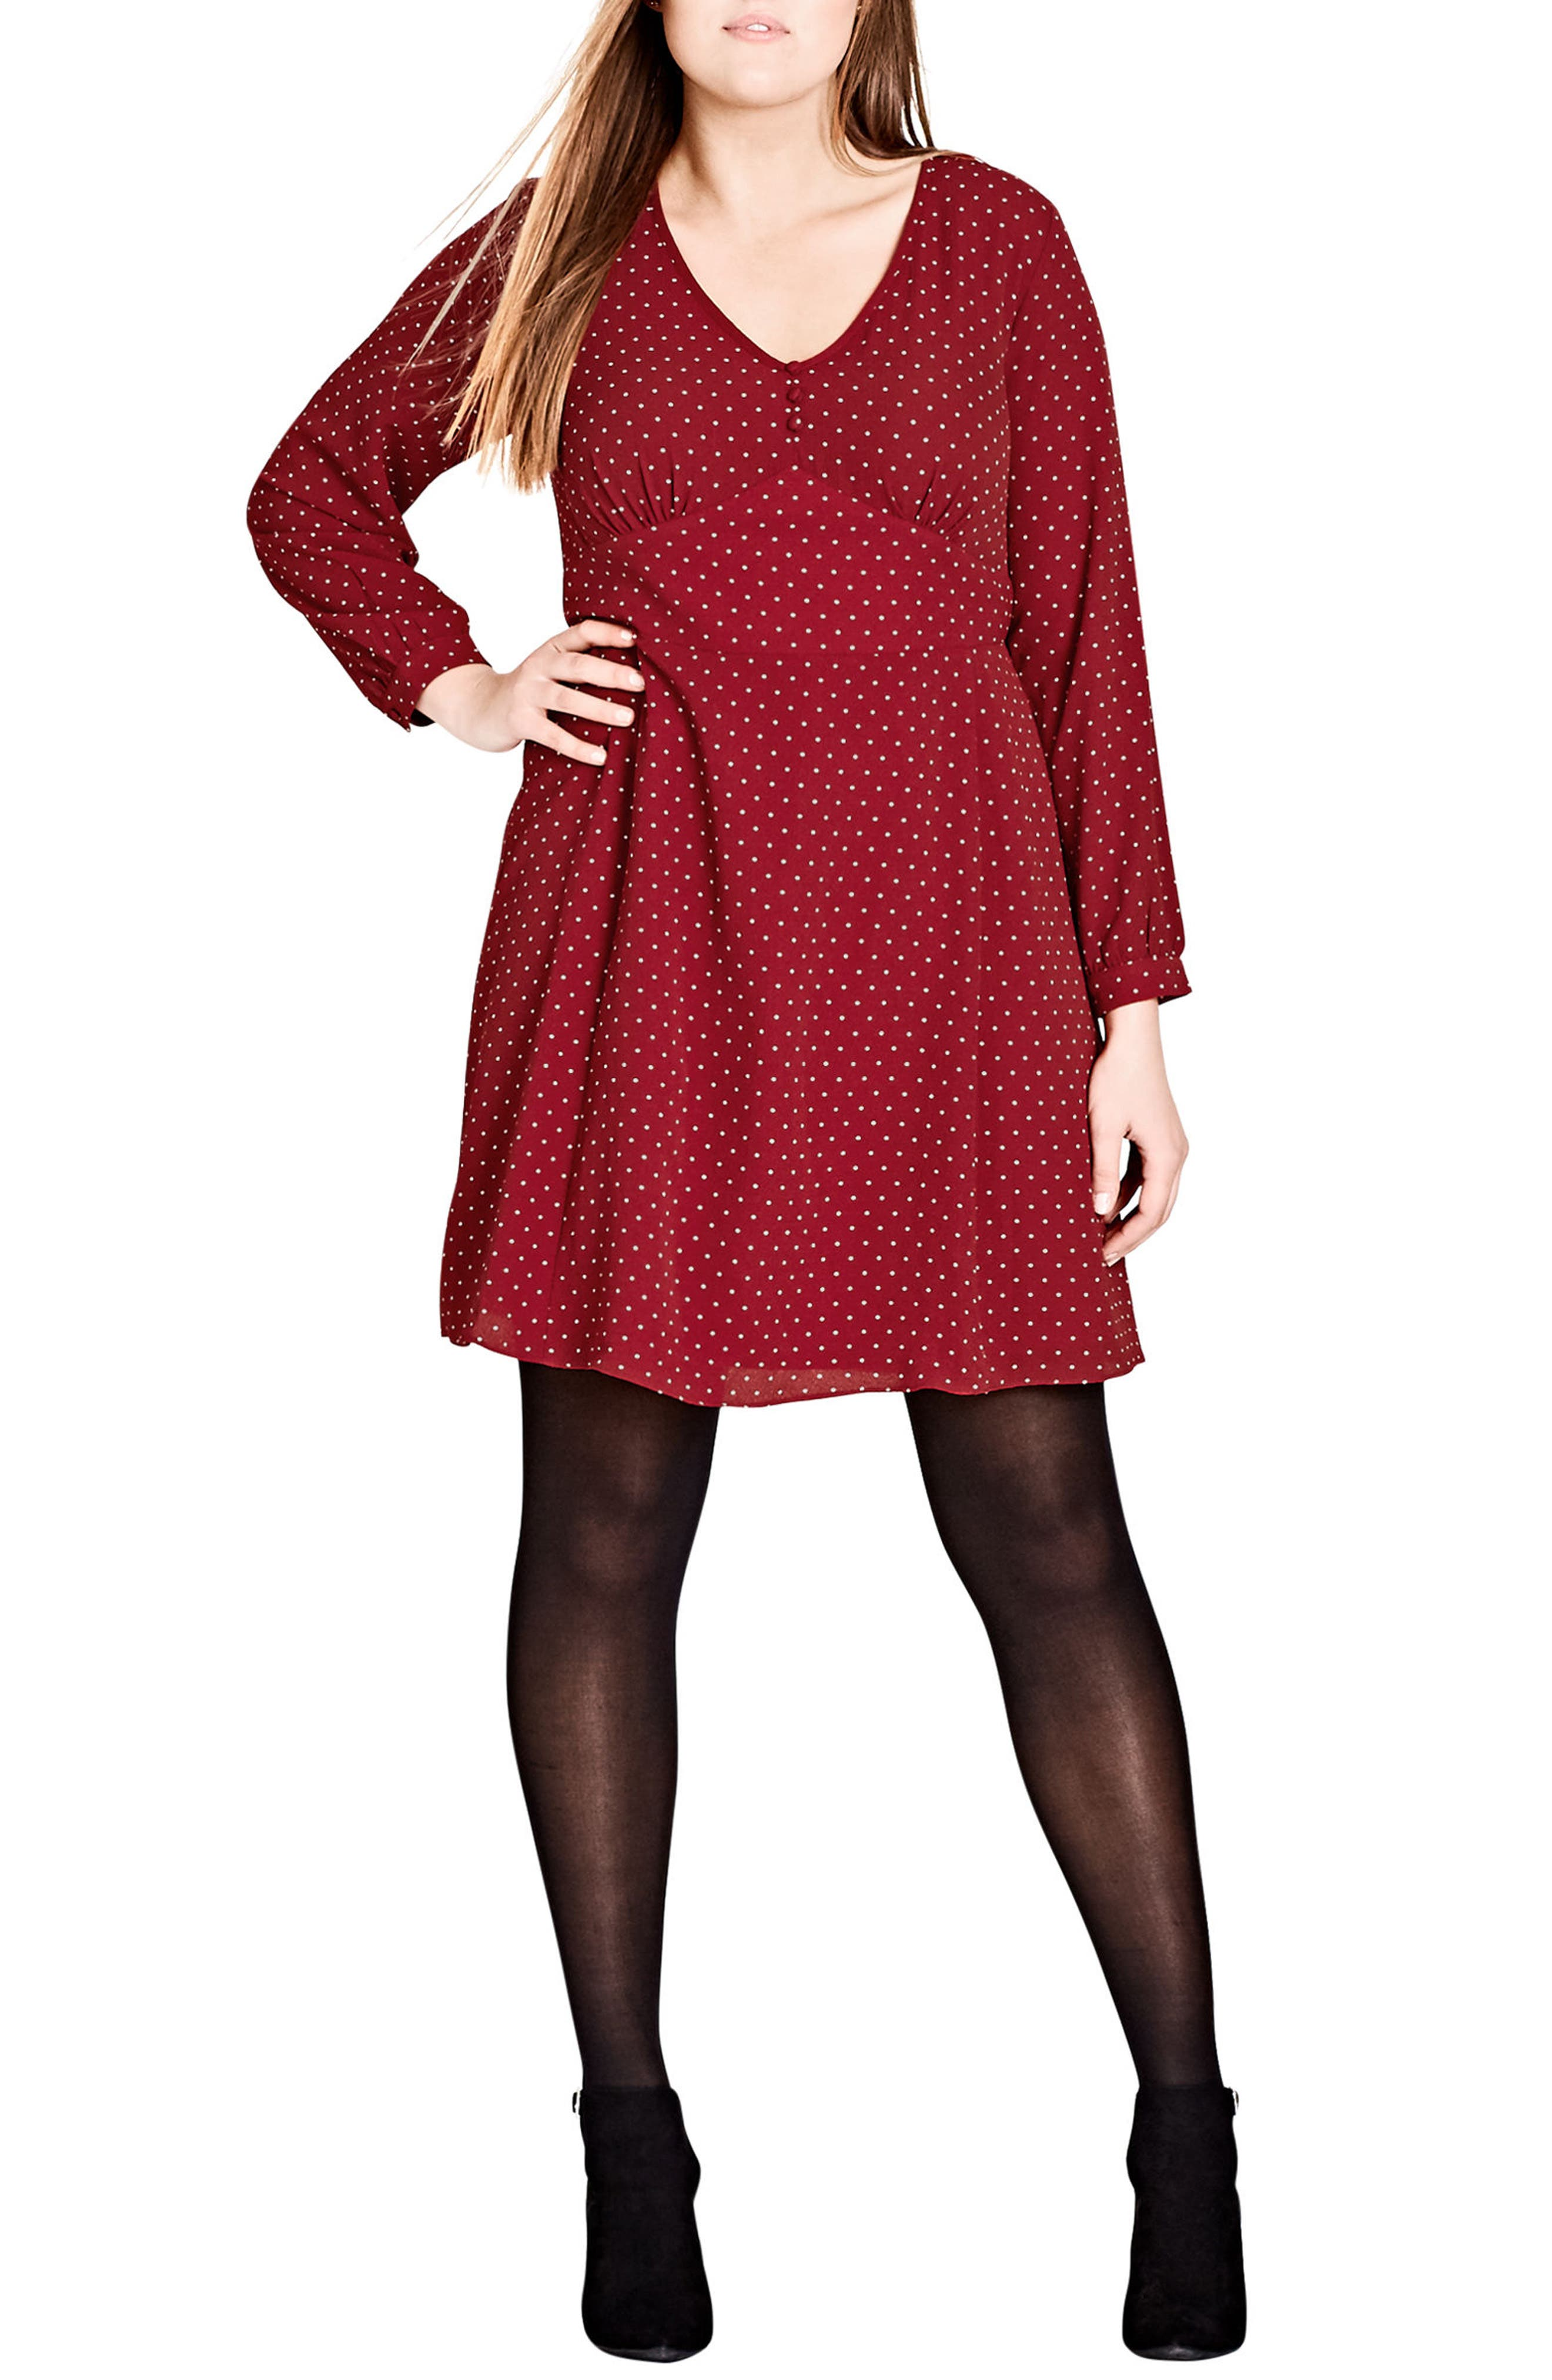 Sweet Nothing Polka Dot Dress,                             Main thumbnail 1, color,                             Red Rose